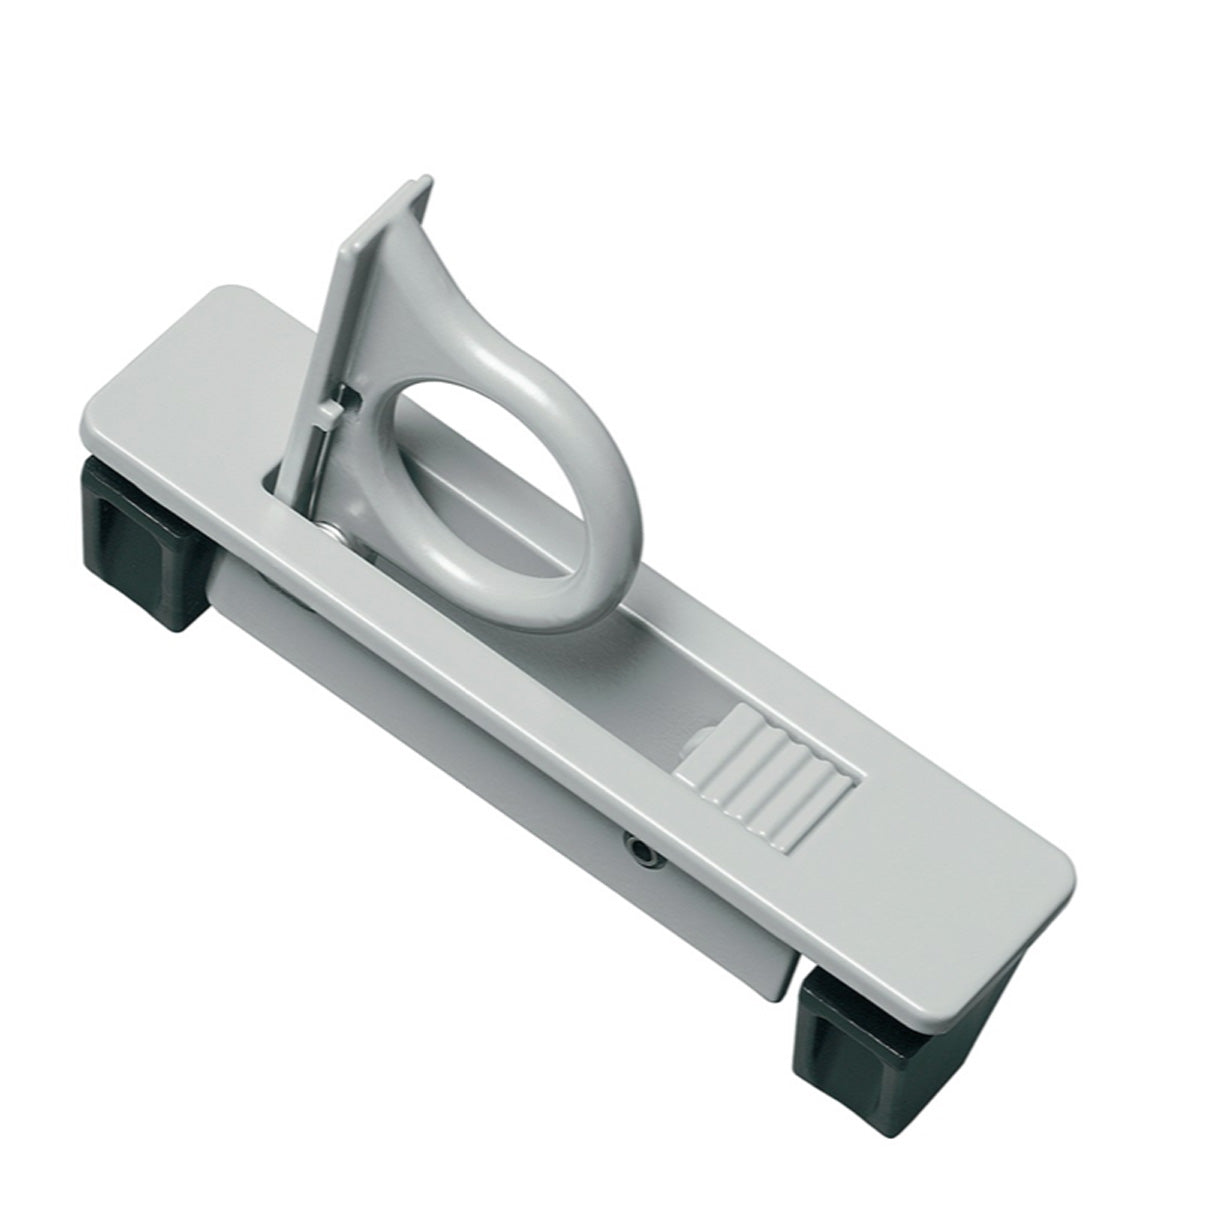 Tray / Recessed Handle Die Cast - KT